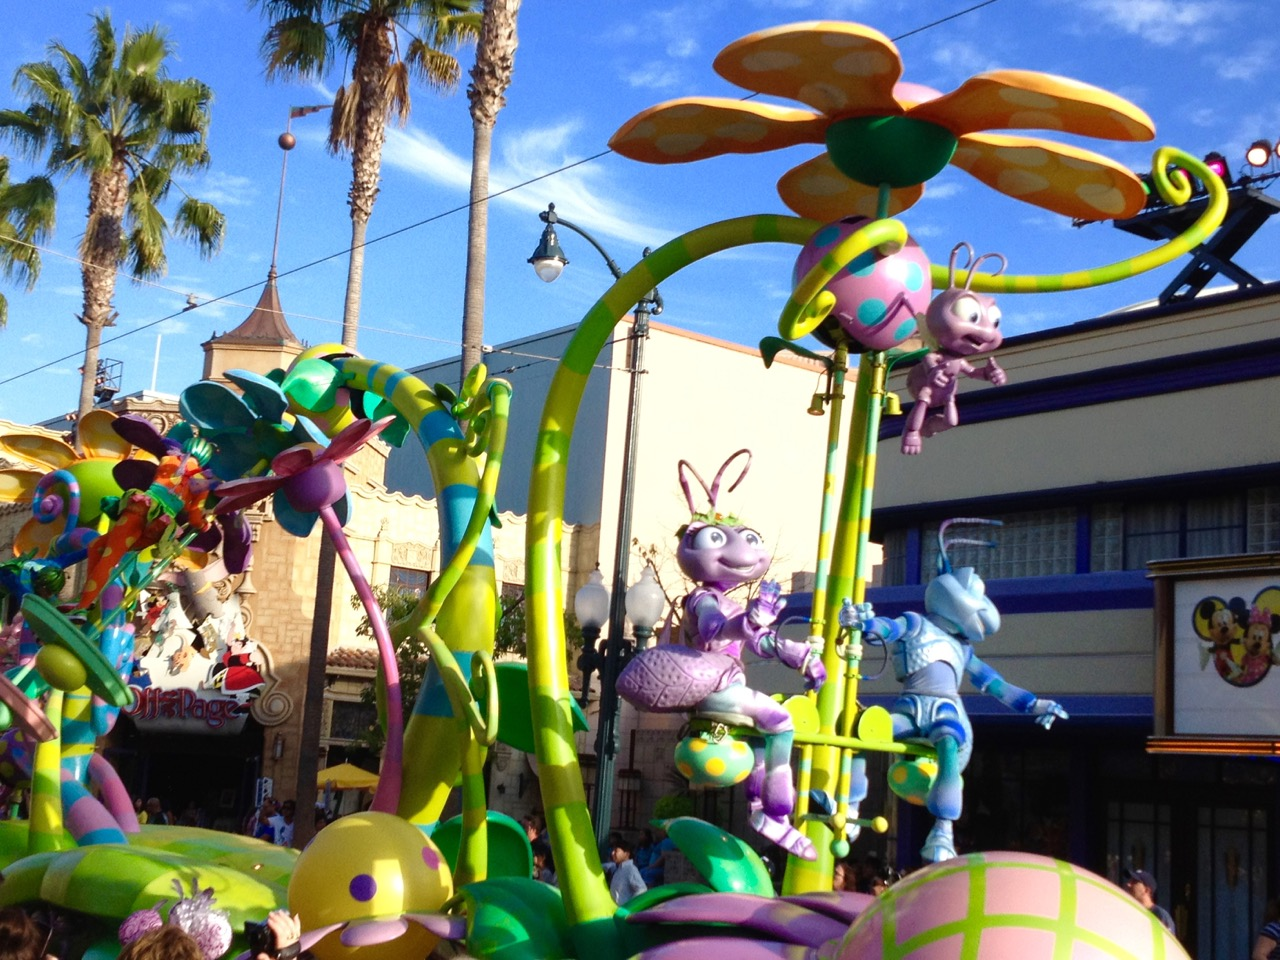 Pixar's Play Parade rolling down Hollywood. Photo by J. Jeff Kober.